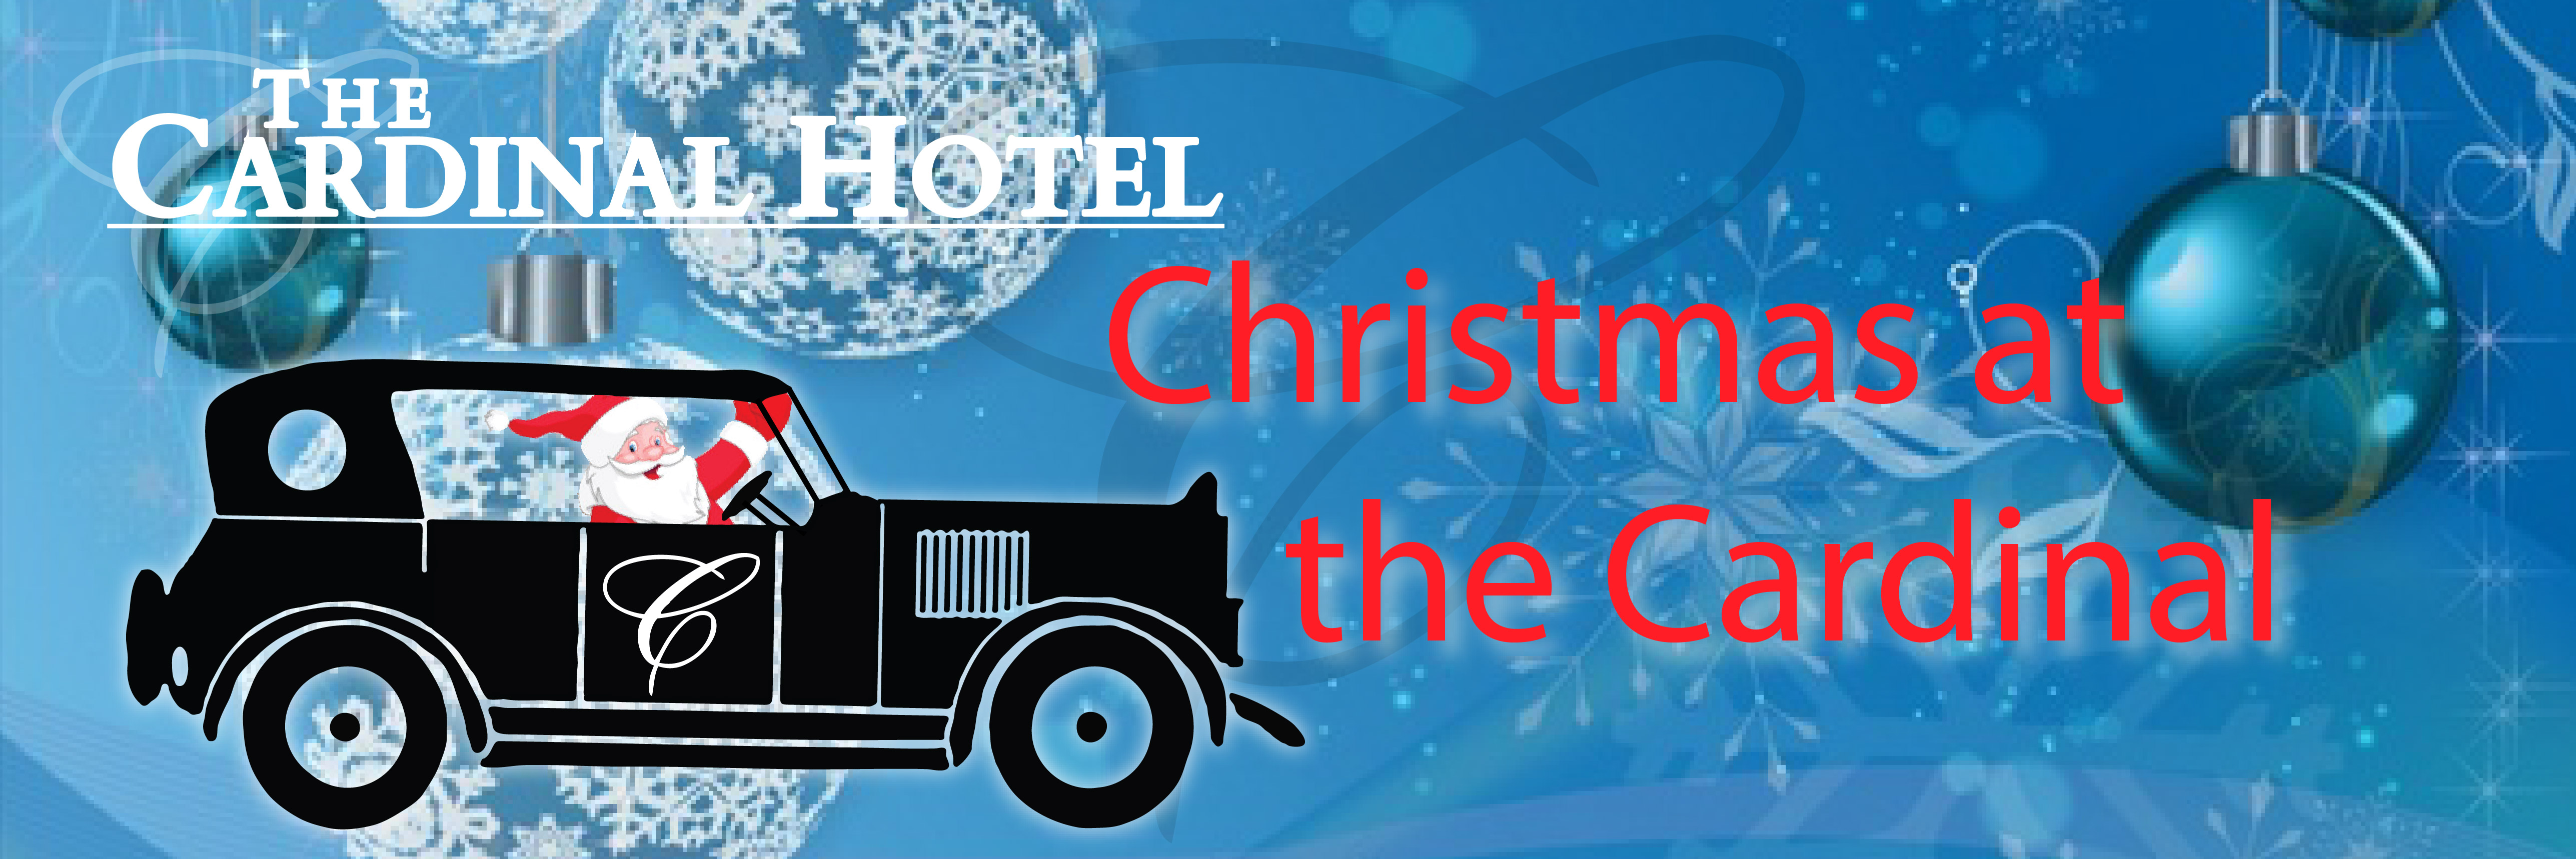 "Blue holiday ornament background with a vintage car being driven by an image of Santa and text displaying the words ""Christmas at the Cardinal"""